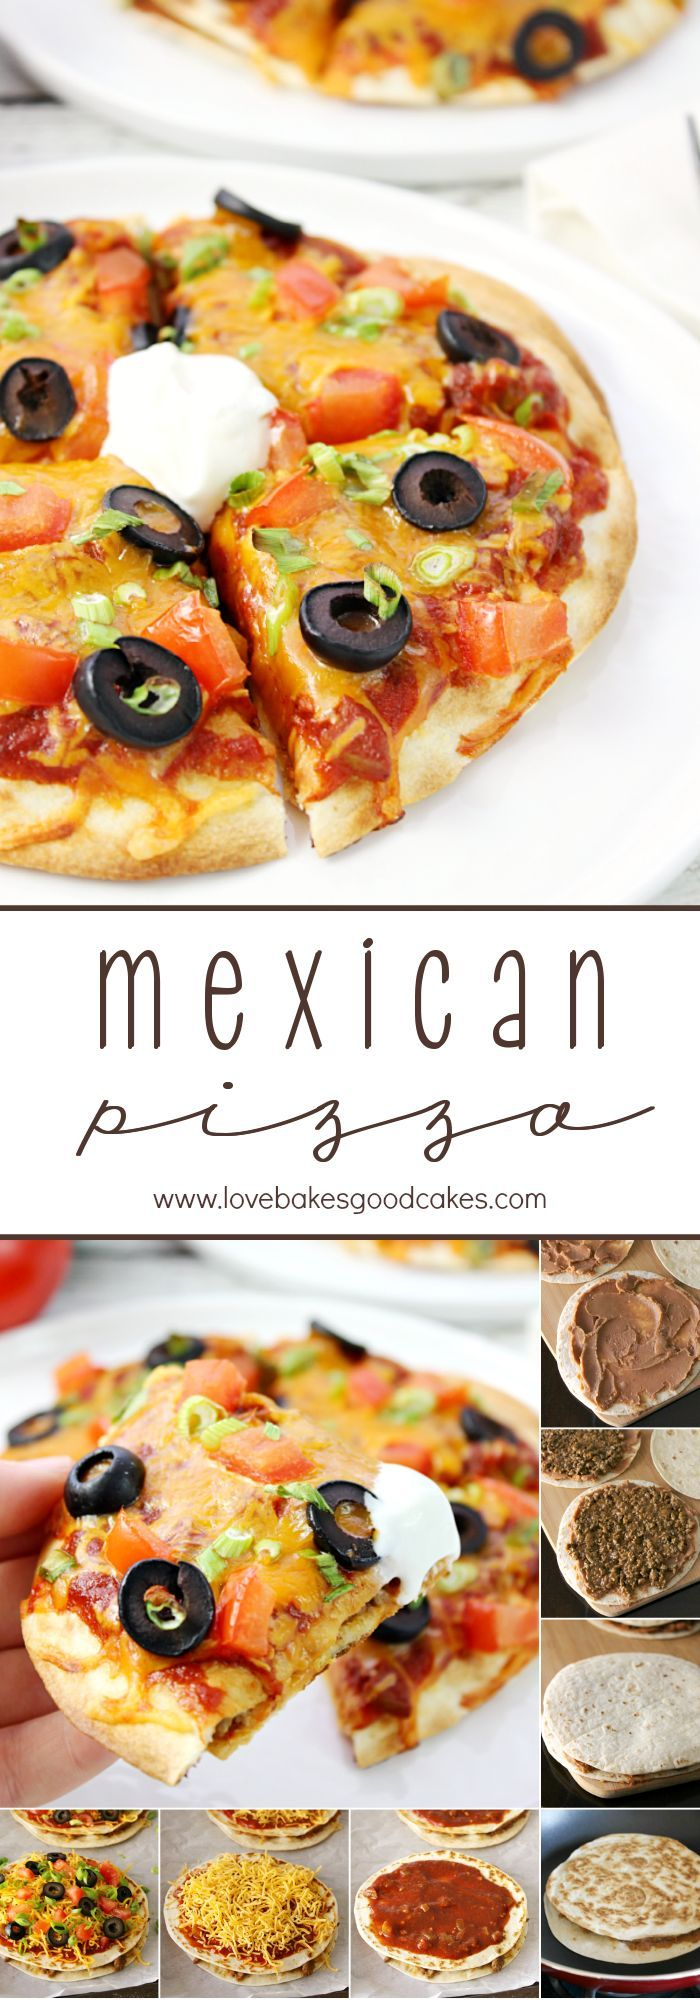 This homemade Mexican Pizza recipe is better than the famous fast food joint! Get your daily dose of dairy with melty cheese and a dollop of sour cream! #DairyMonth #ad